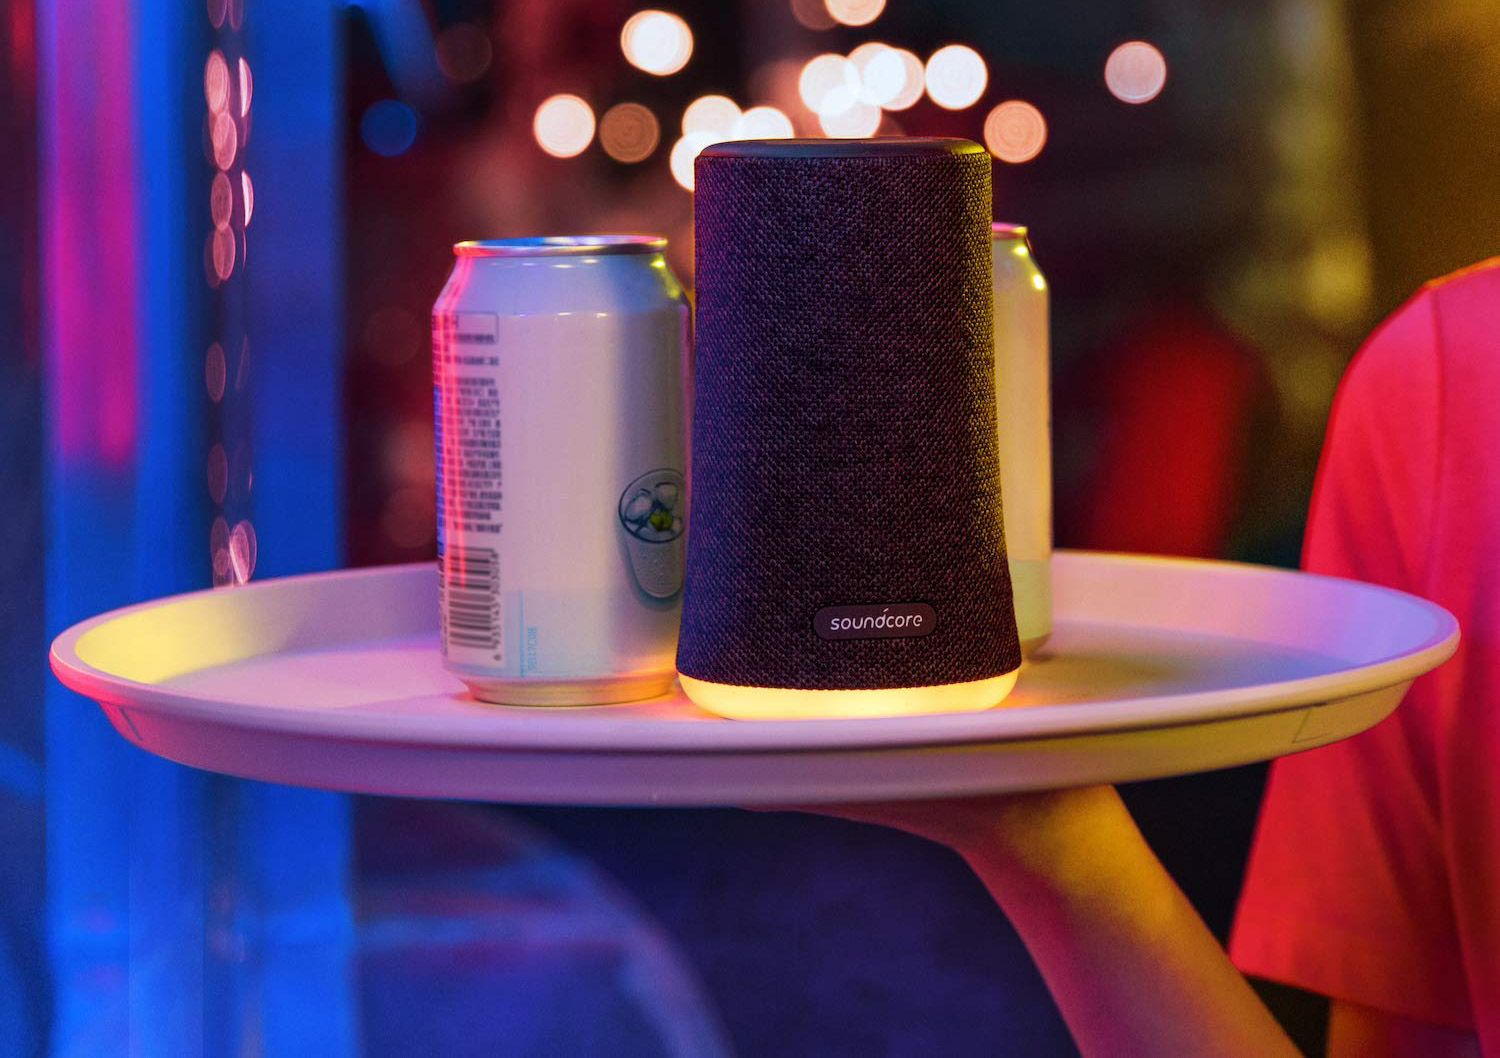 Get an Anker Soundcore Flare Mini Bluetooth speaker for an all-time low of $30 ($20 off)